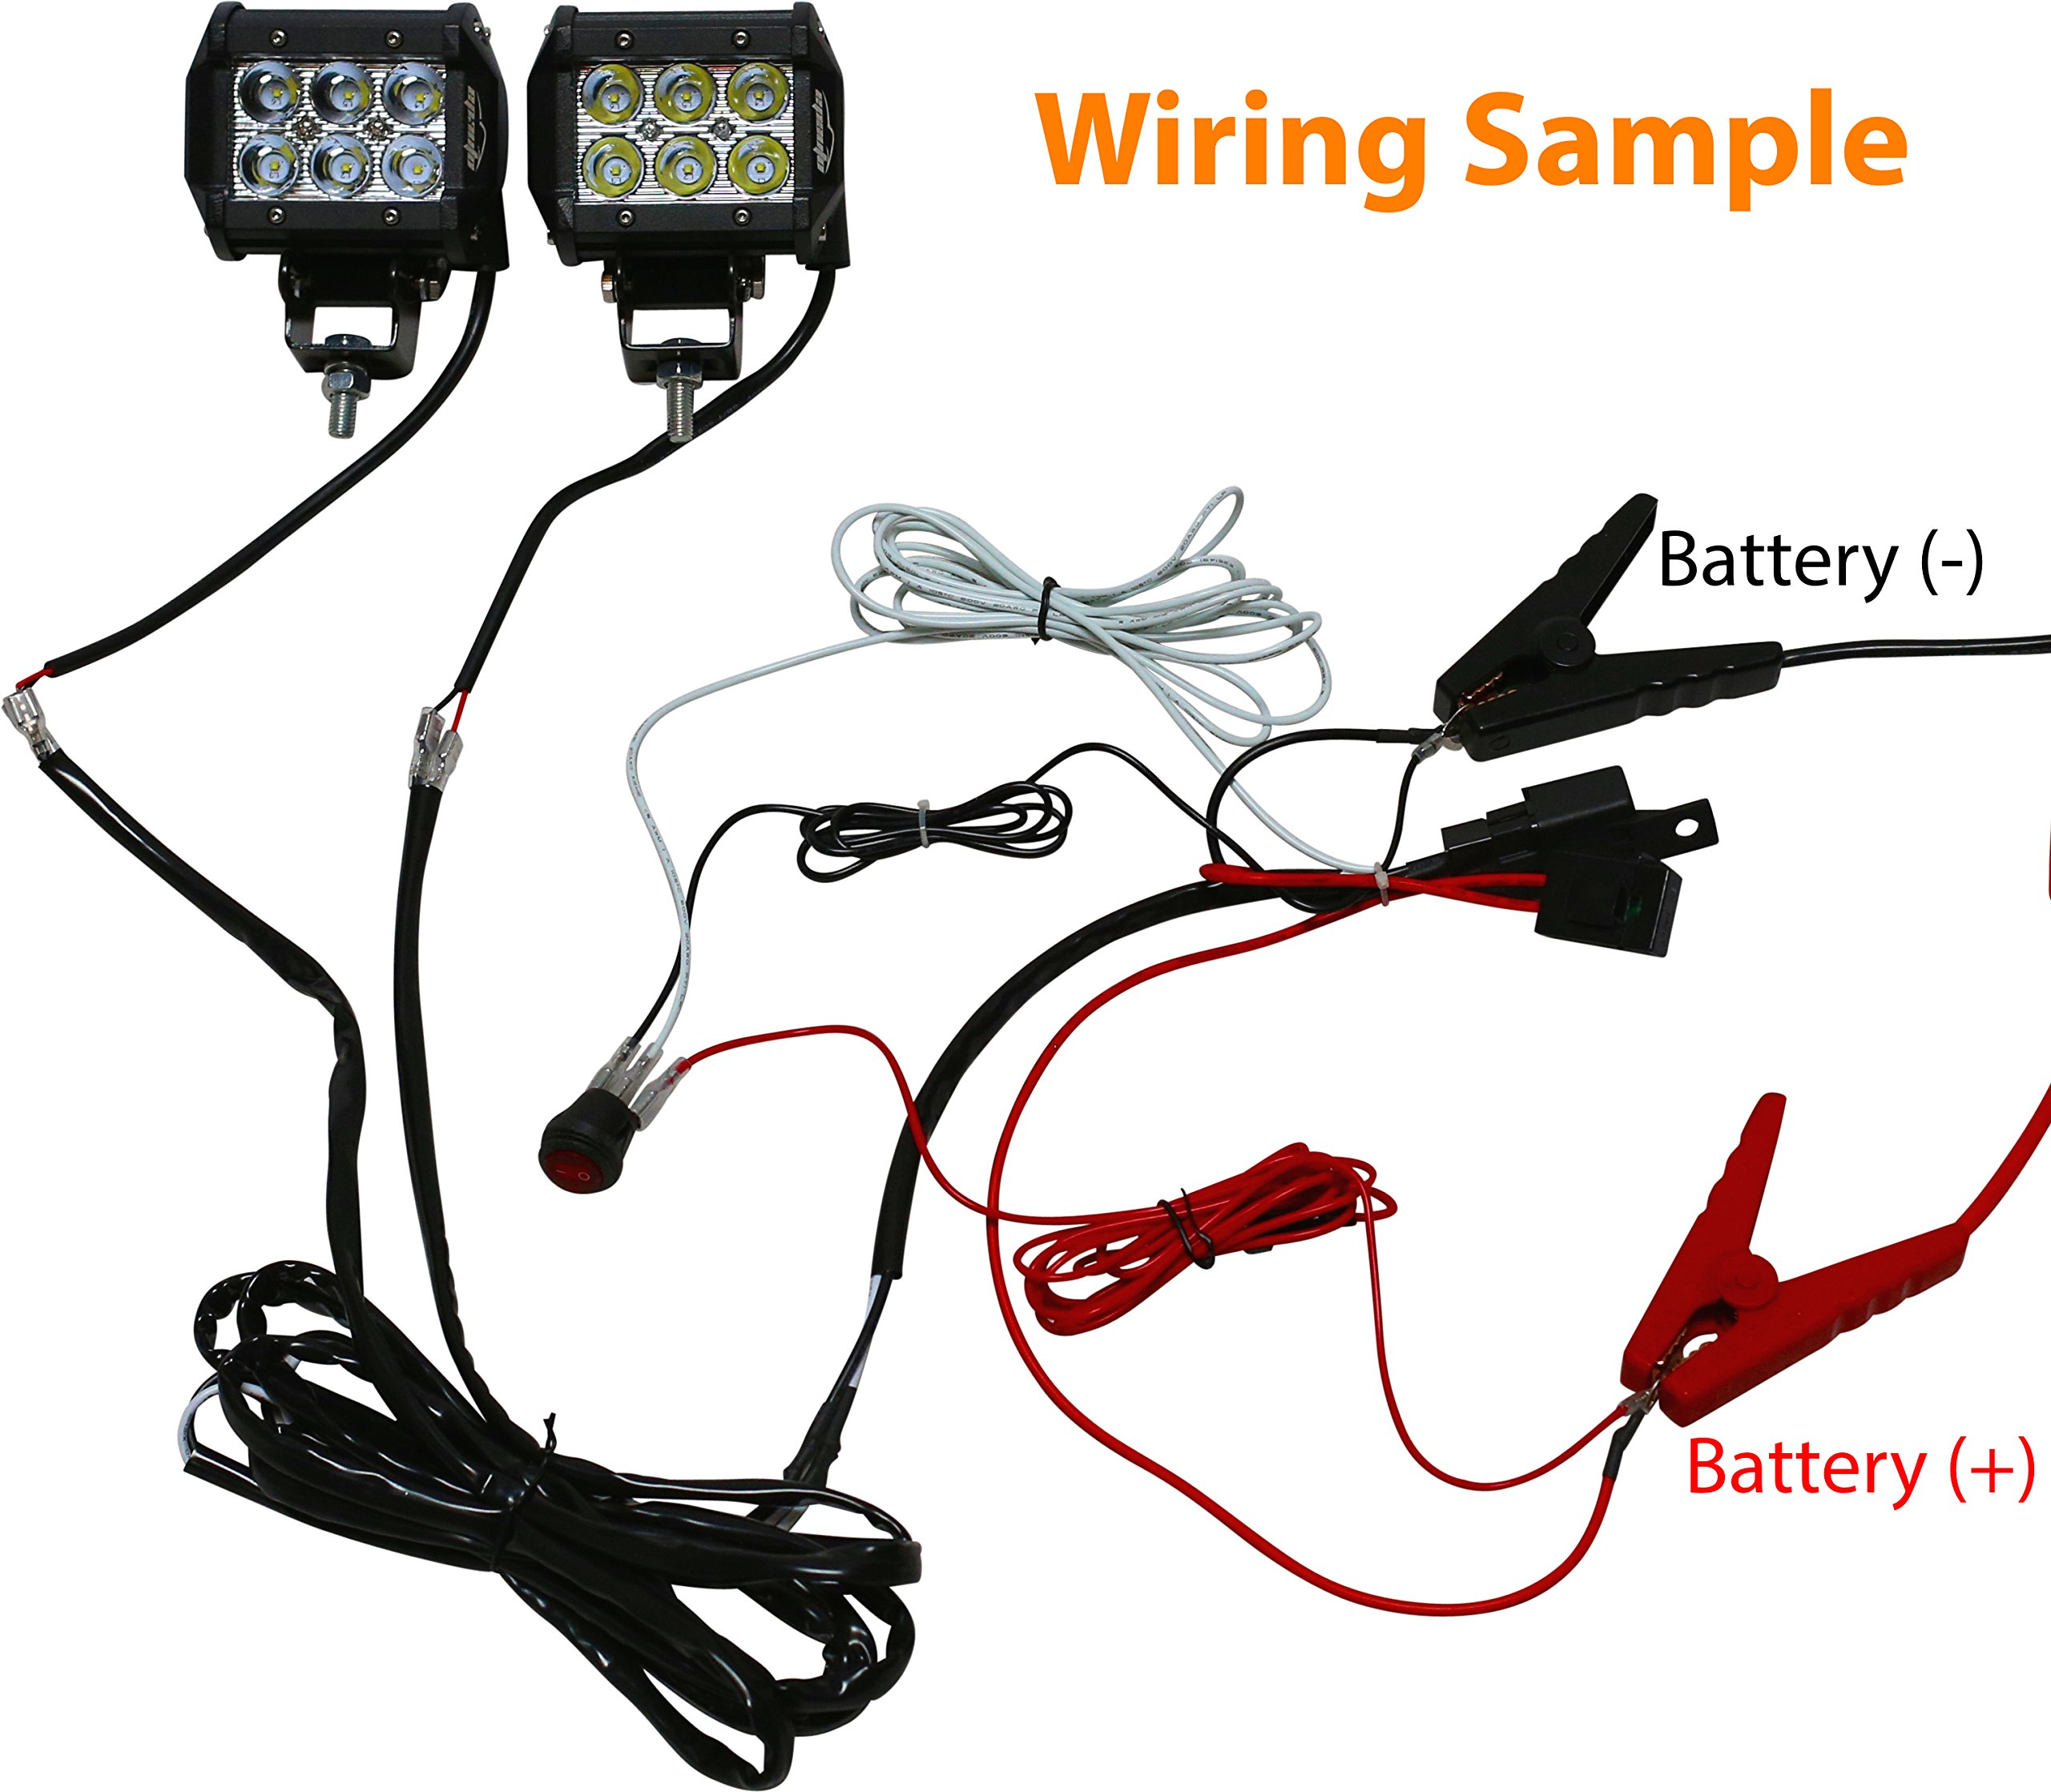 Epauto Led Light Bar Wiring Harness Kit 12v 40a Relay Fuse On Off For Bars Switch Ae 005 1 Accessories Automotive Tibs